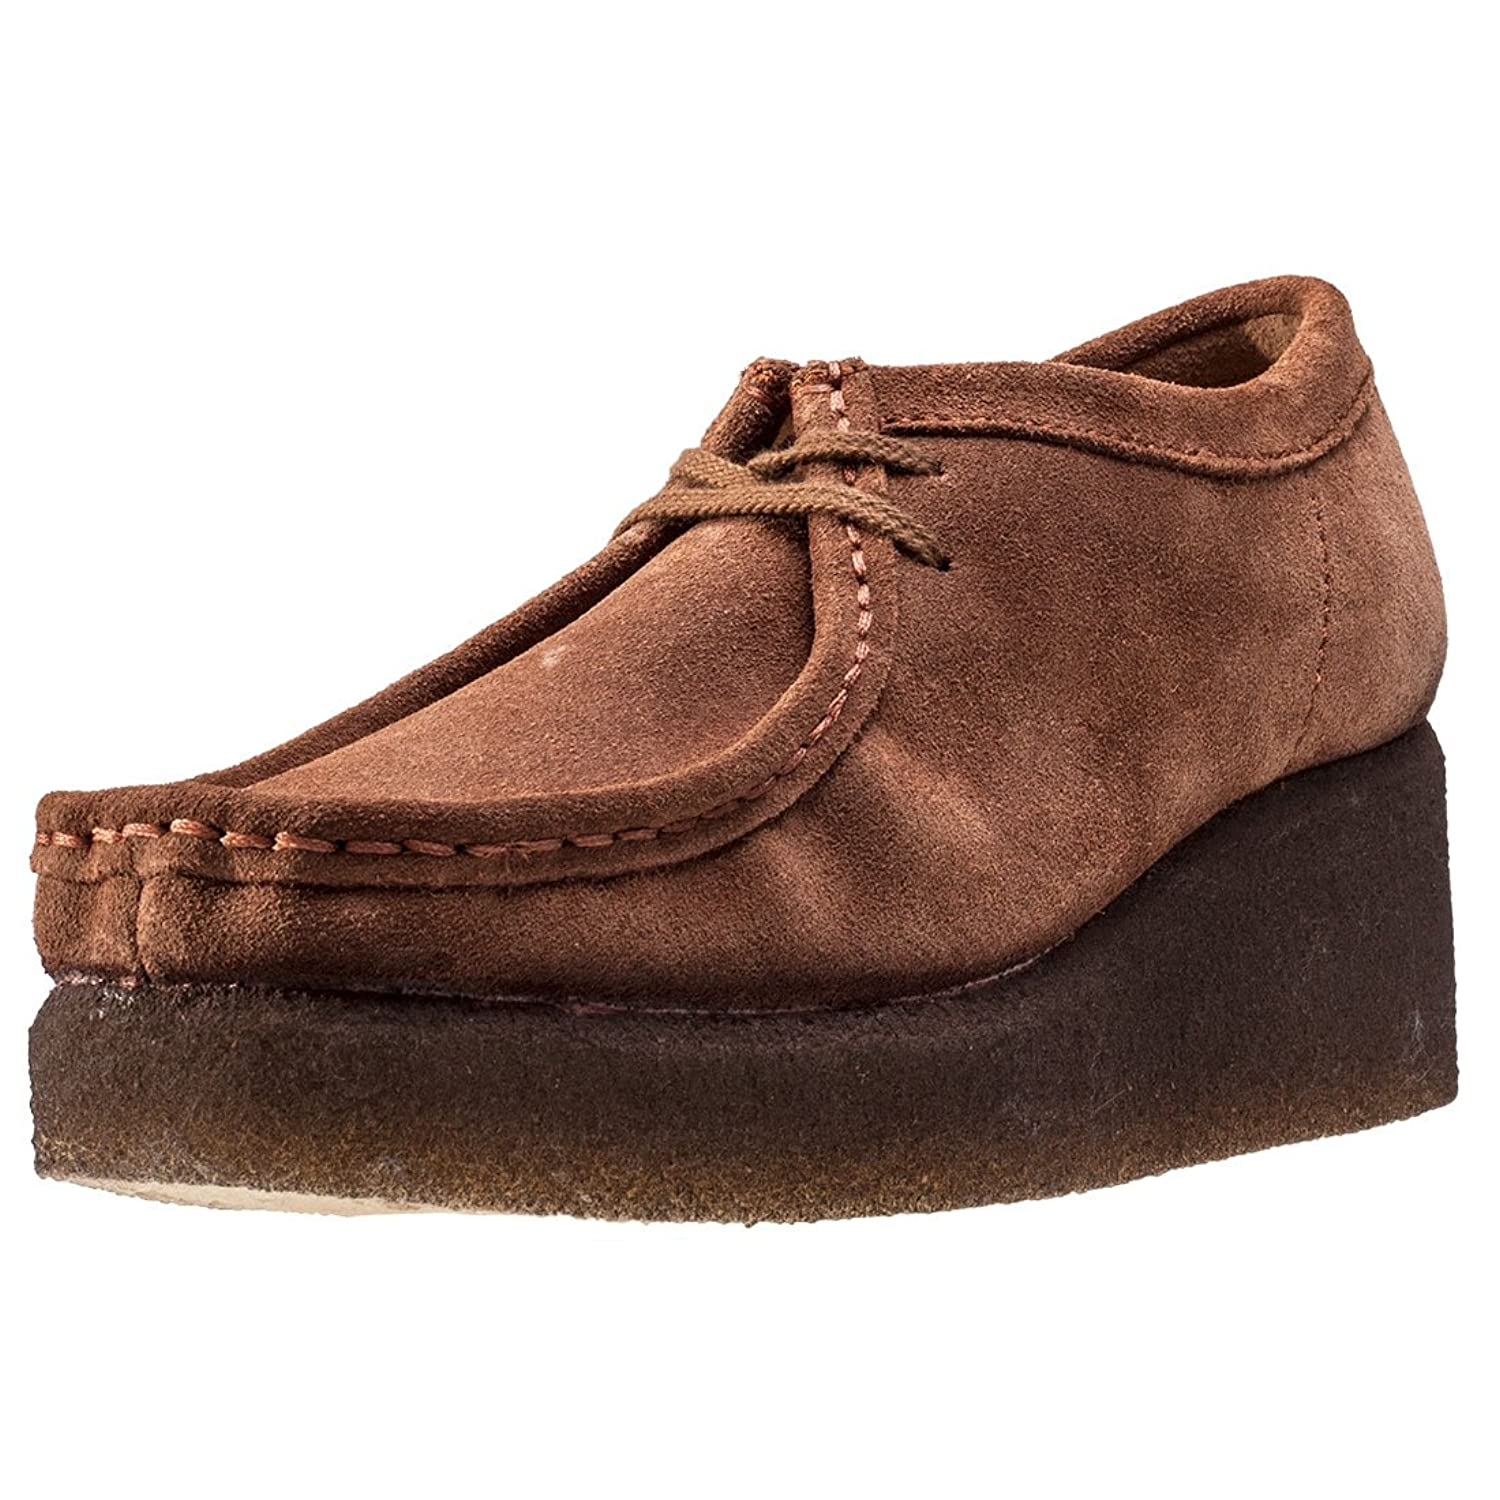 CLARKS Originals Womens Peggy Bee Platform Moccasin Suede Shoes